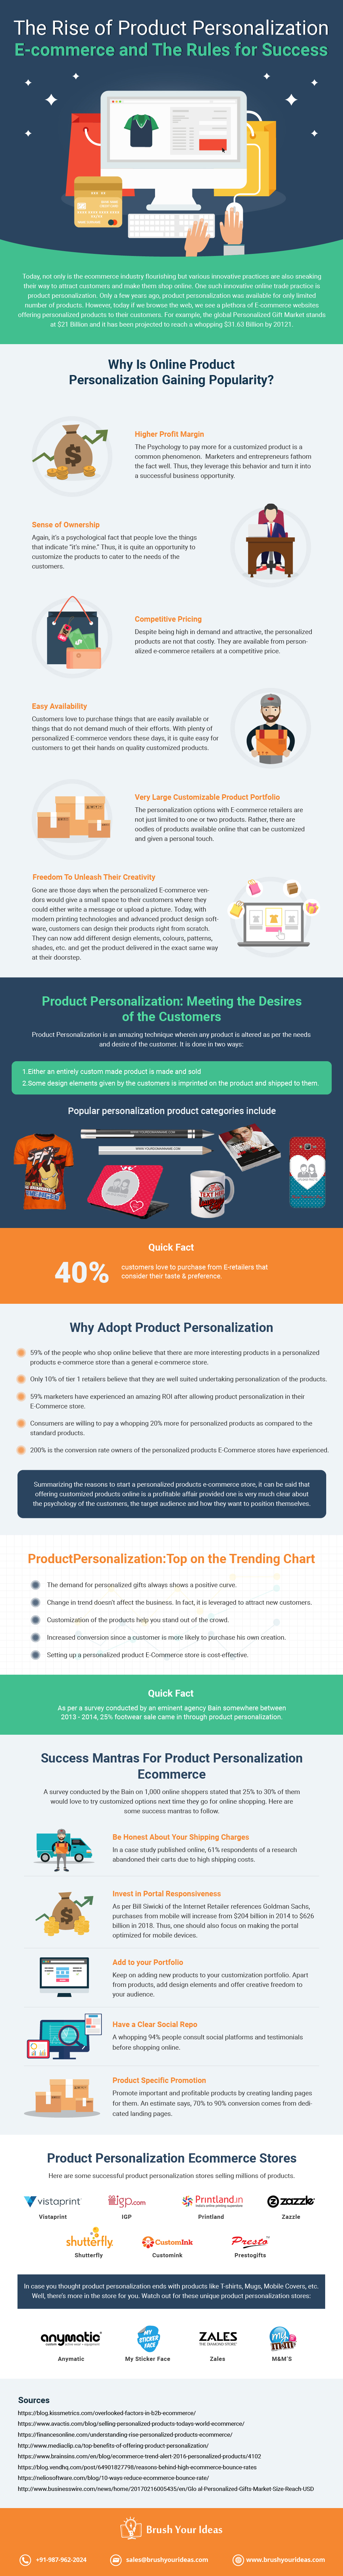 the-rise-of-product-personalization-e-commerce-and-the-rules-for-success